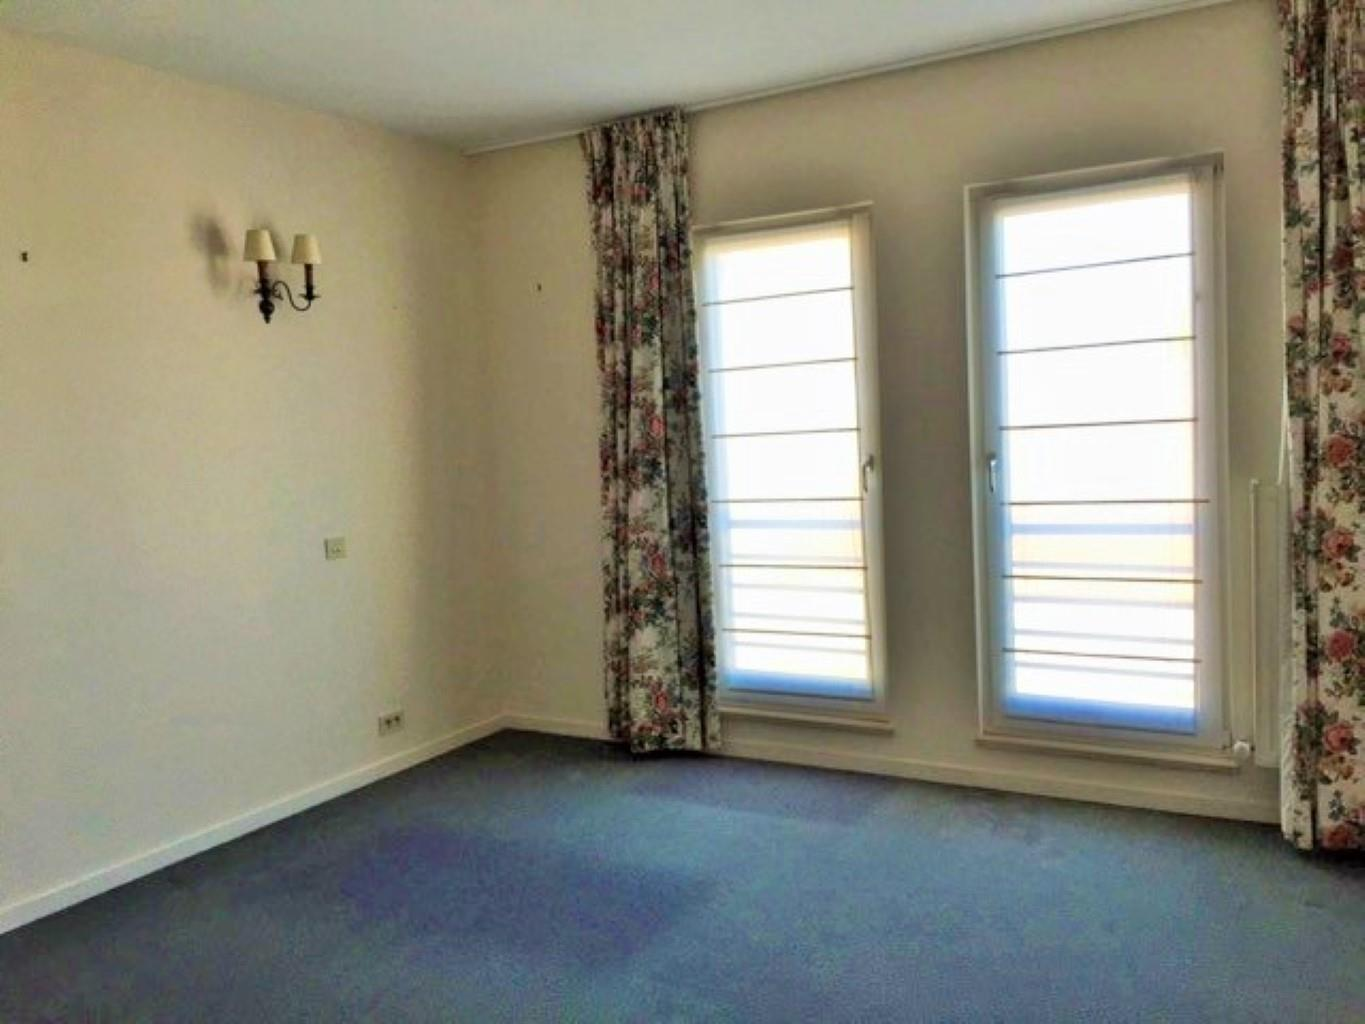 Appartement - Uccle - #4402684-10